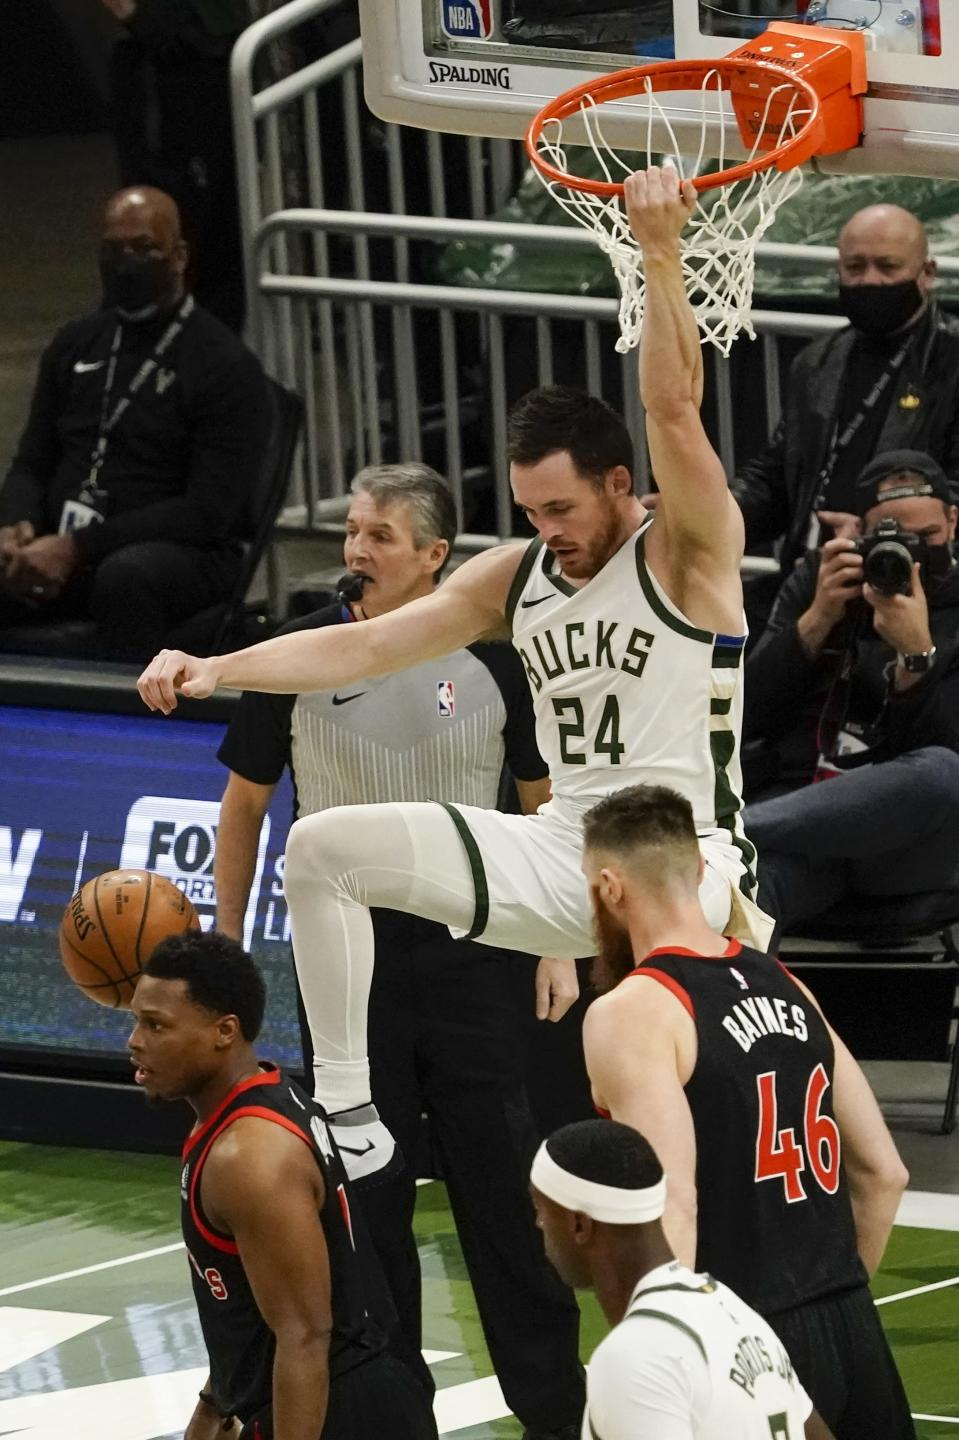 Milwaukee Bucks' Pat Connaughton dunks during the first half of an NBA basketball game against the Toronto Raptors Tuesday, Feb. 16, 2021, in Milwaukee. (AP Photo/Morry Gash)